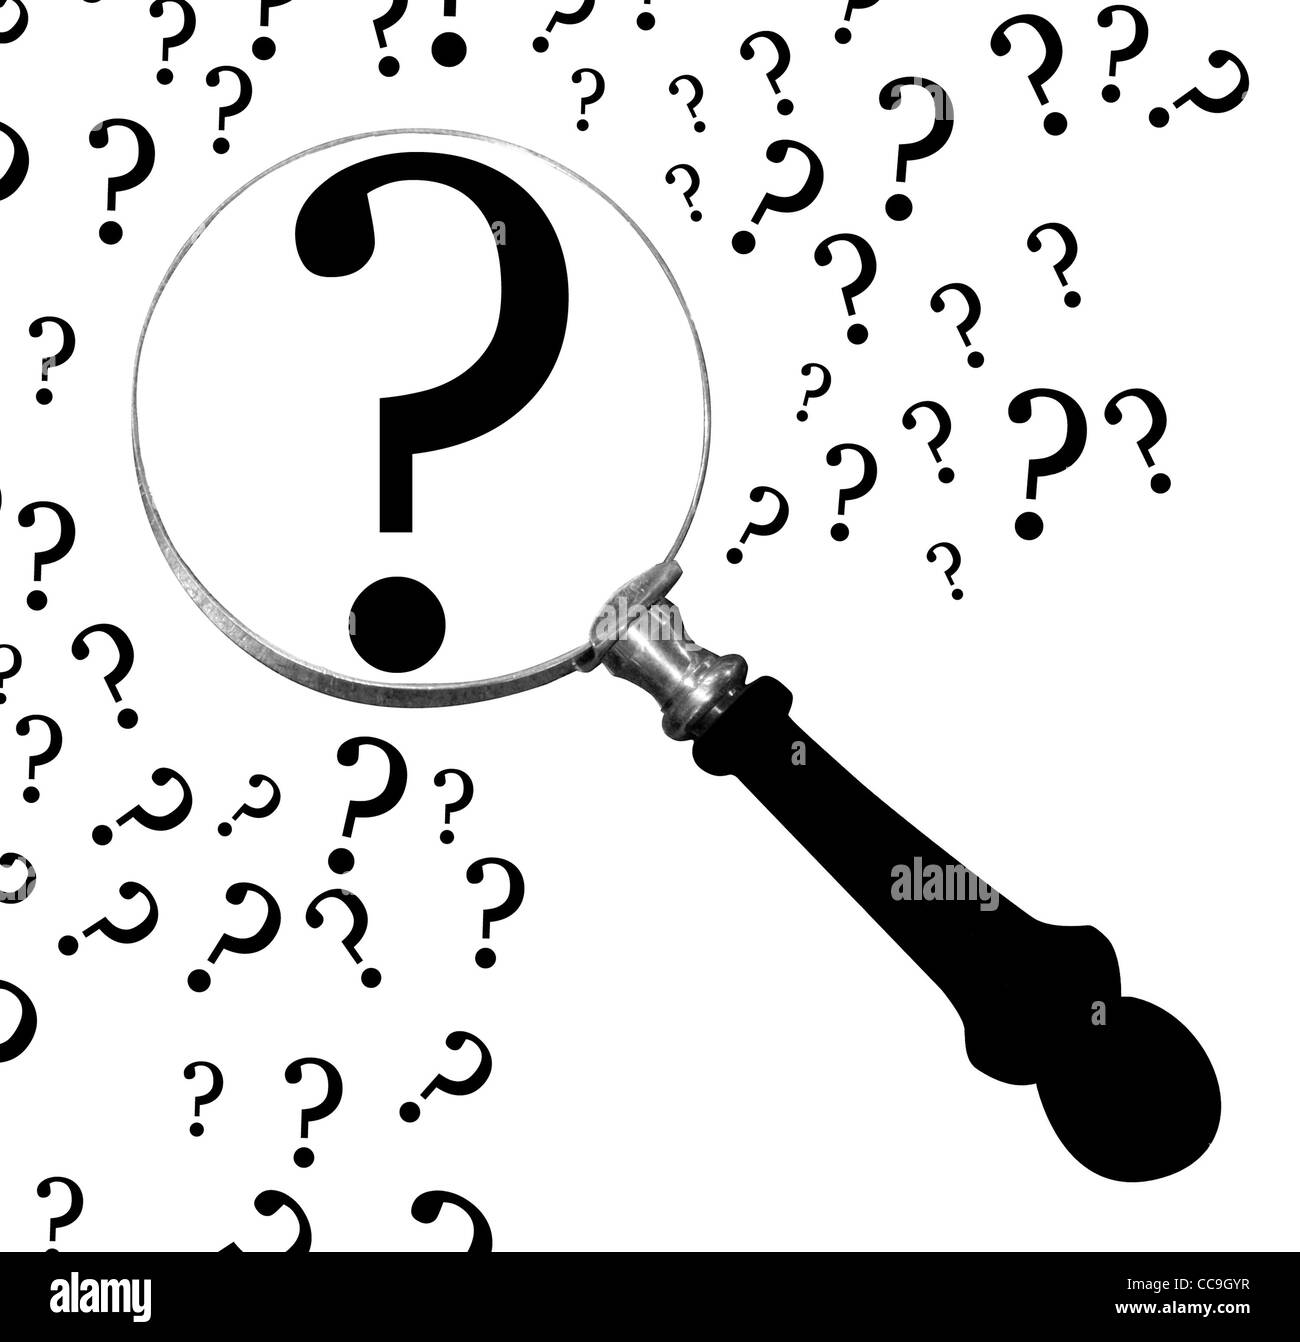 Question under loupe - Stock Image